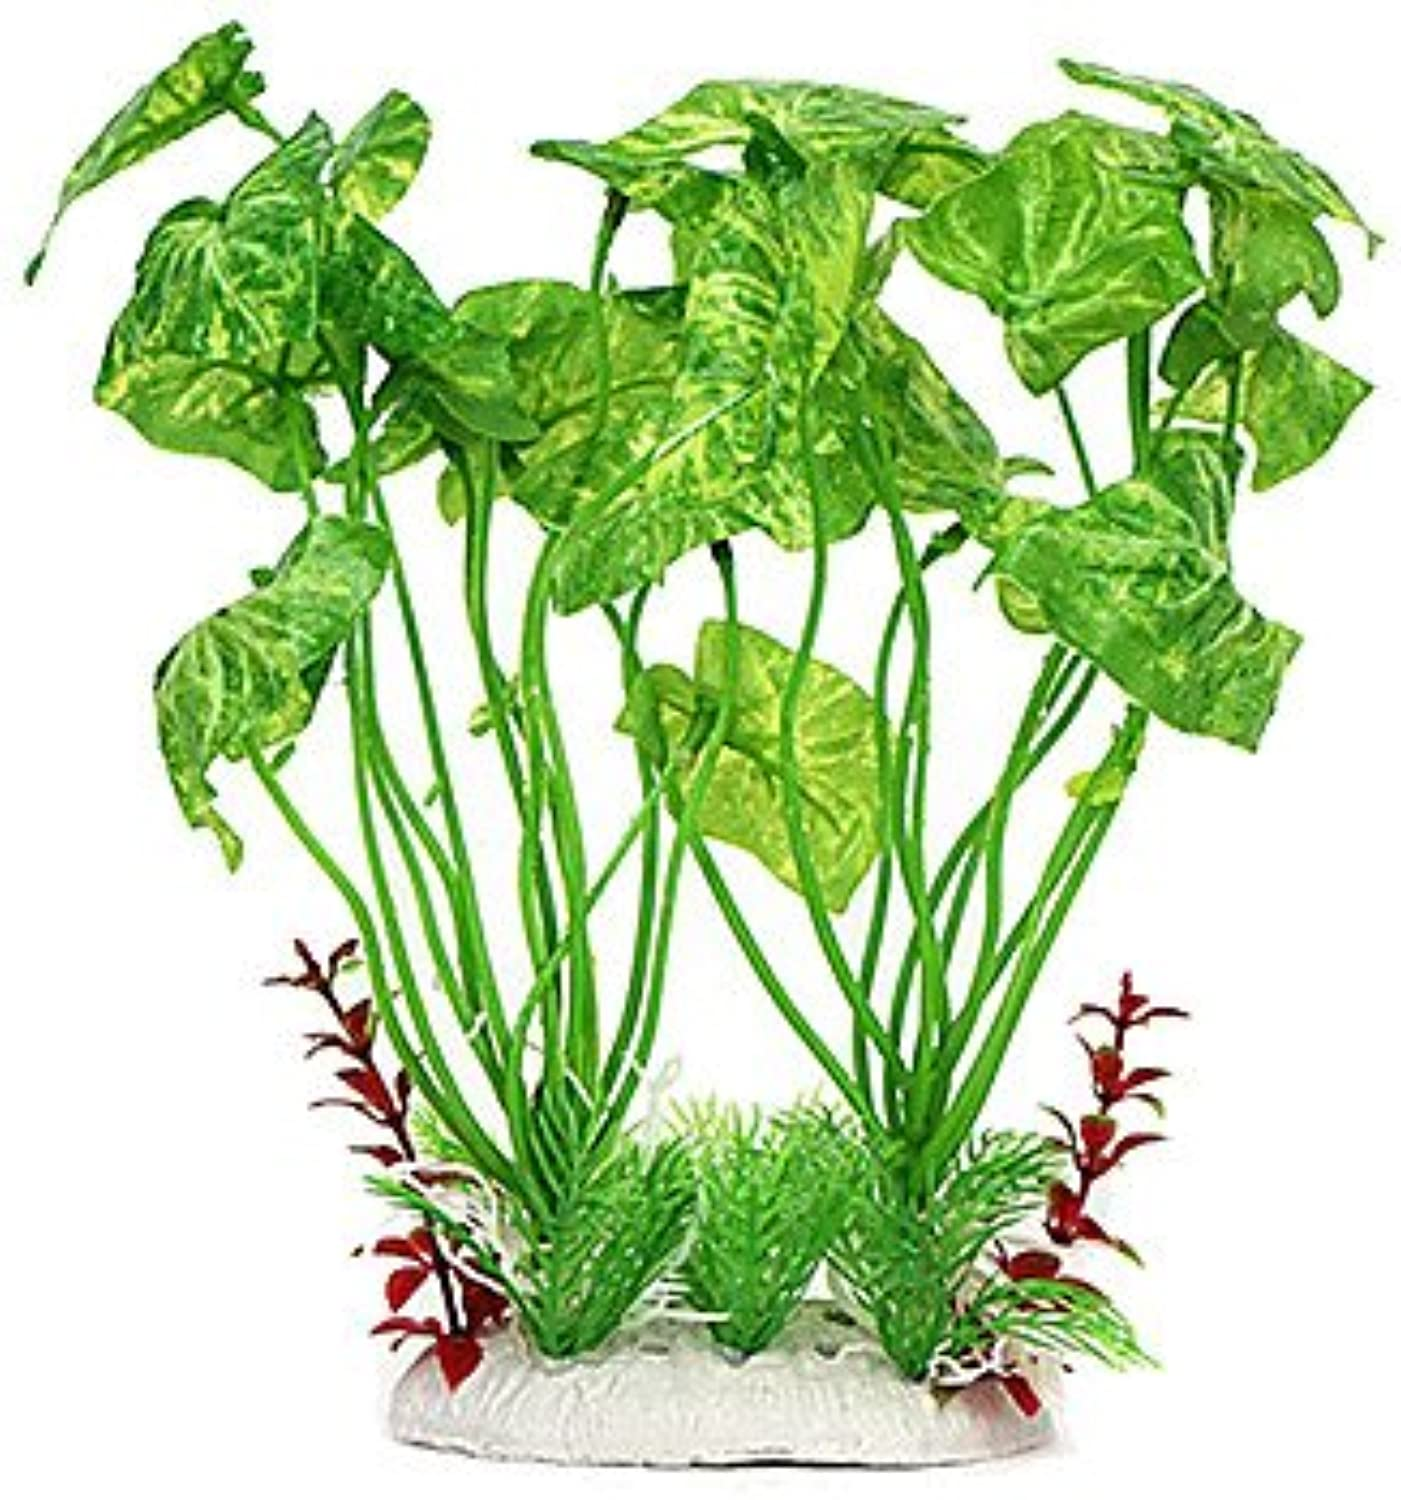 Quick shopping 27cm Green Simulation Plants for Fish Tank Decoration